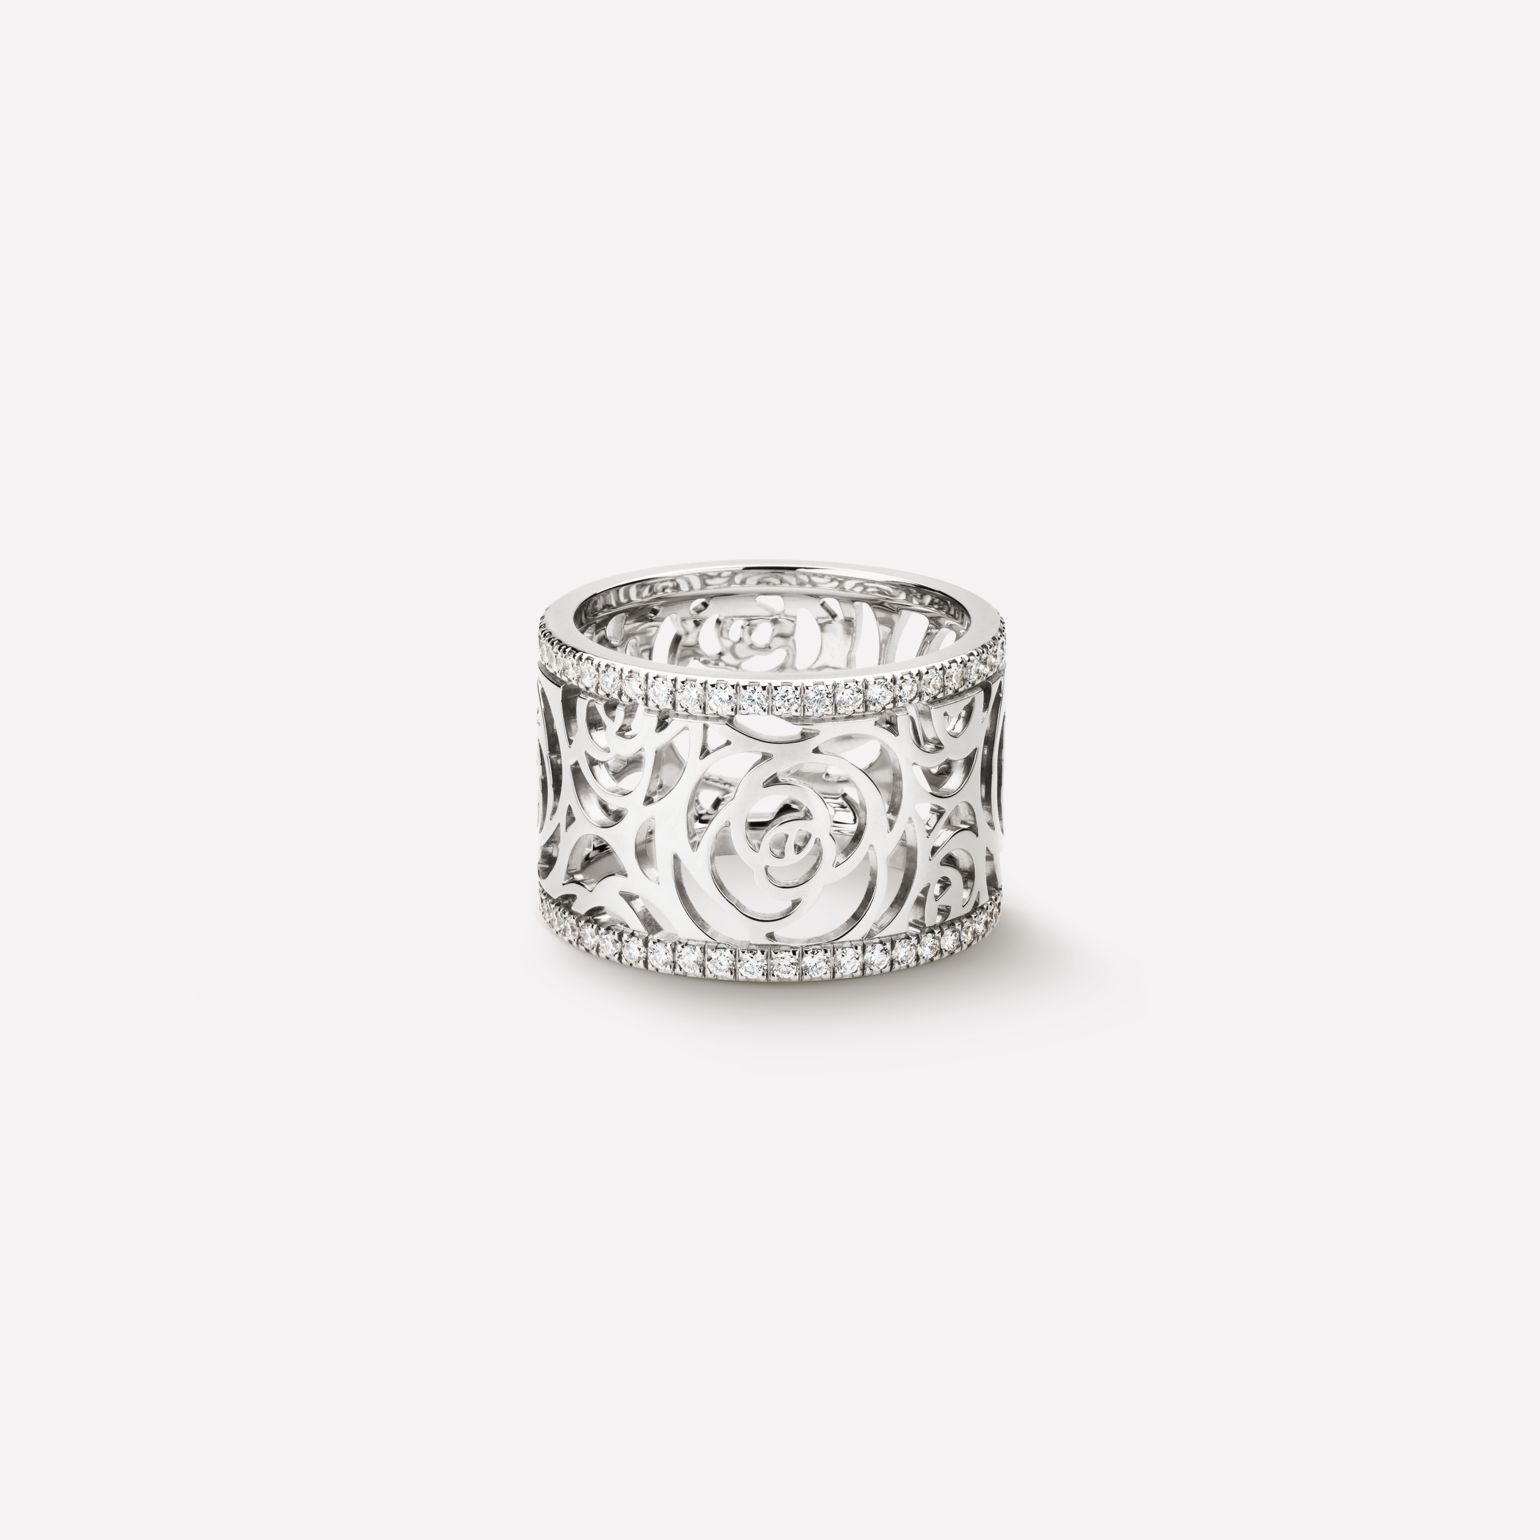 Camélia Ring Camélia Ajouré ring in 18K white gold and diamonds. Medium version.